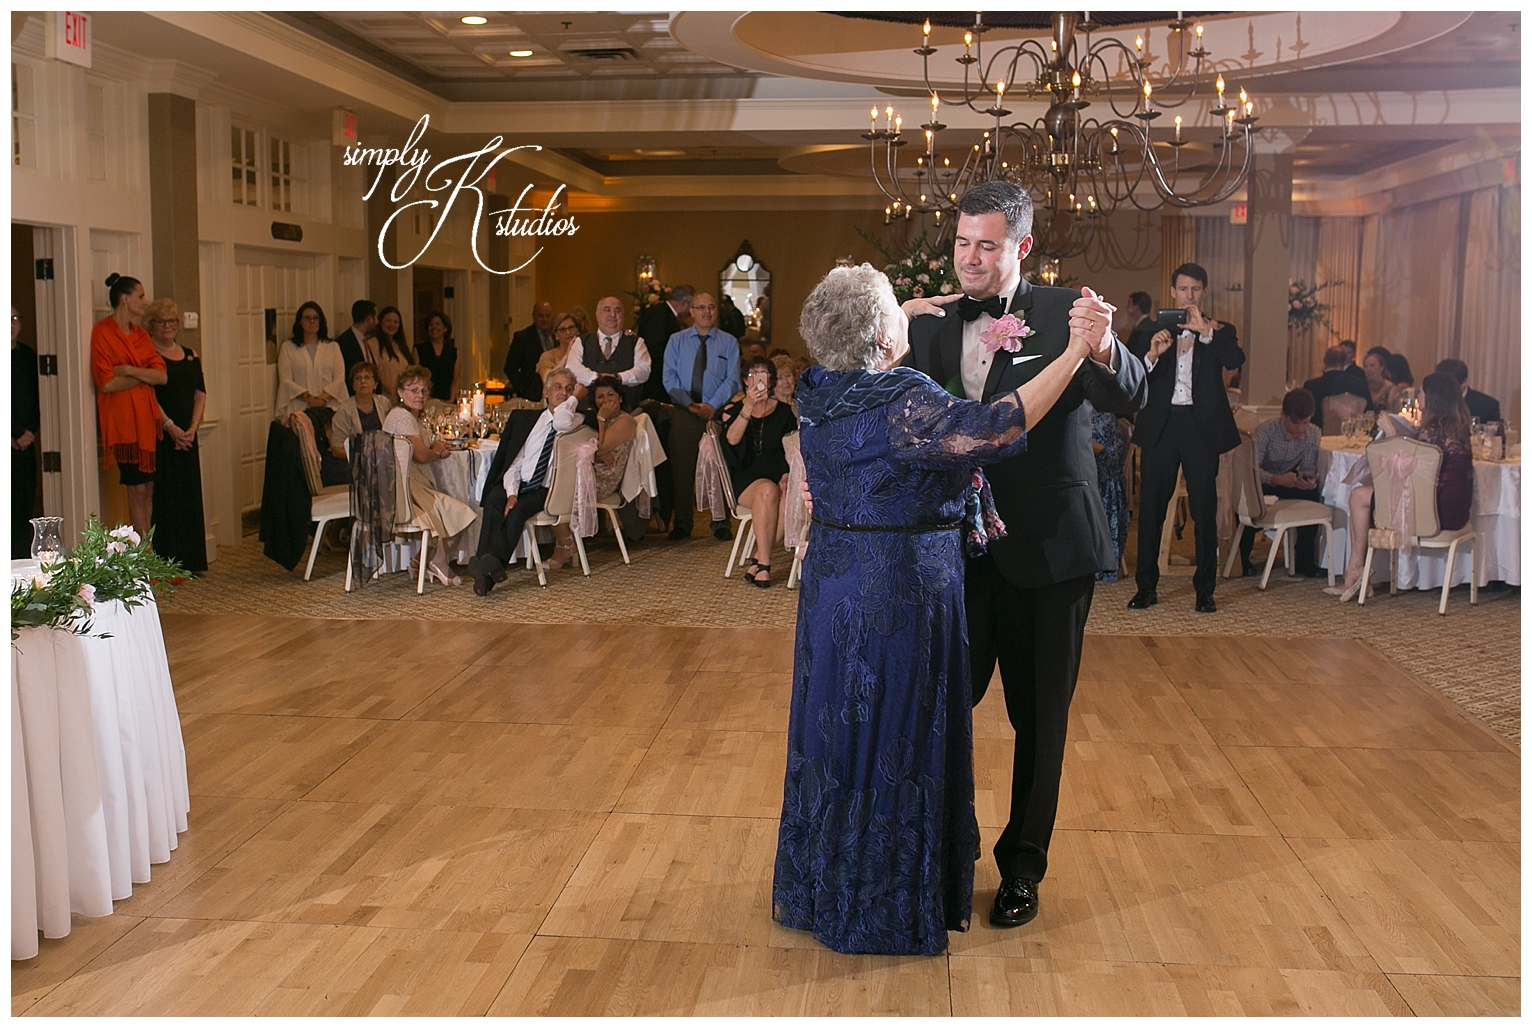 Mother Son Dance at a Wedding.jpg